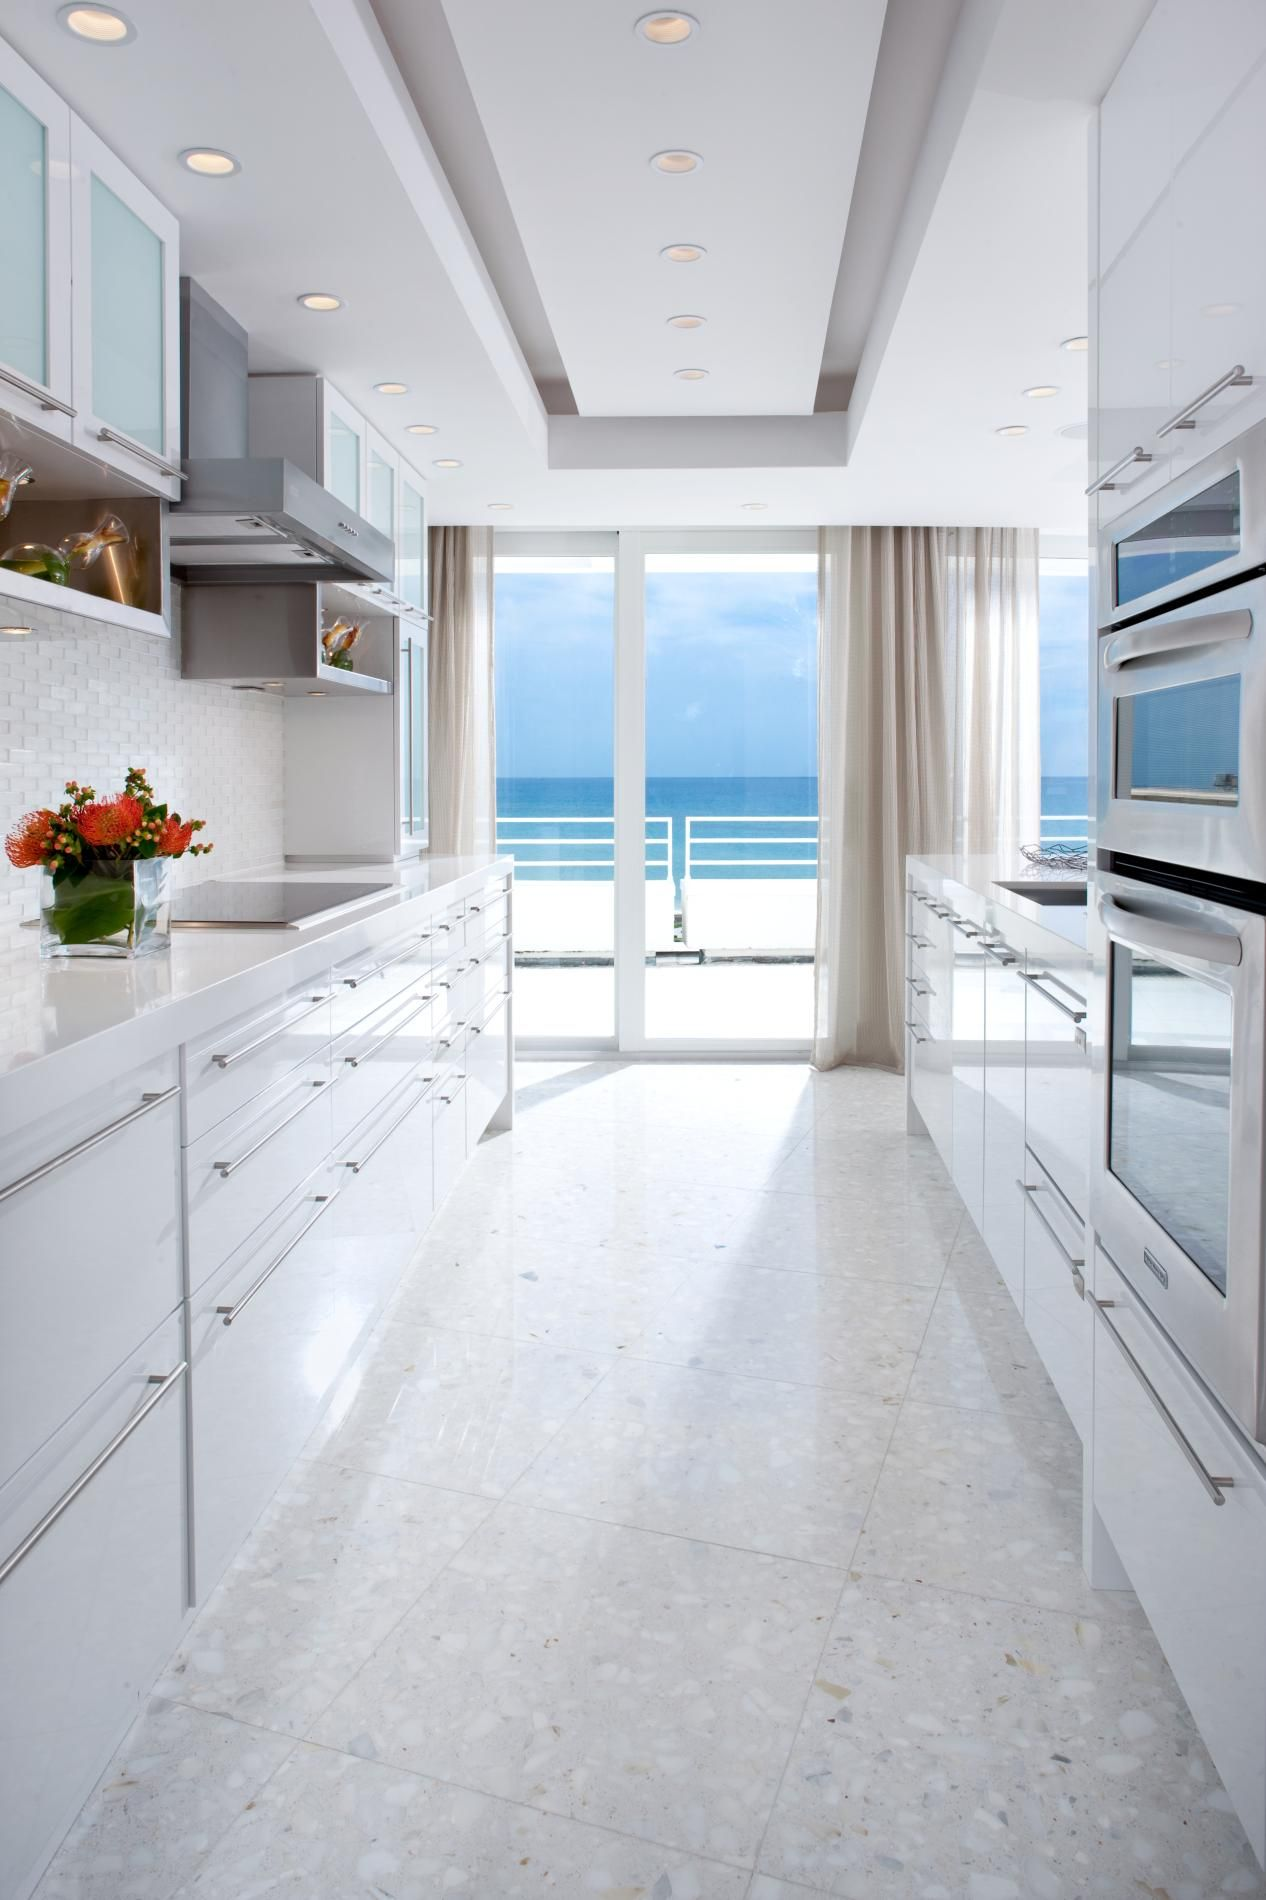 Nice white kitchen design for a long narrow space. with an ... on narrow homes, narrow modern house, narrow bathroom designs, narrow lot floor plans 1600, narrow night stand, narrow house plans, narrow garden designs,